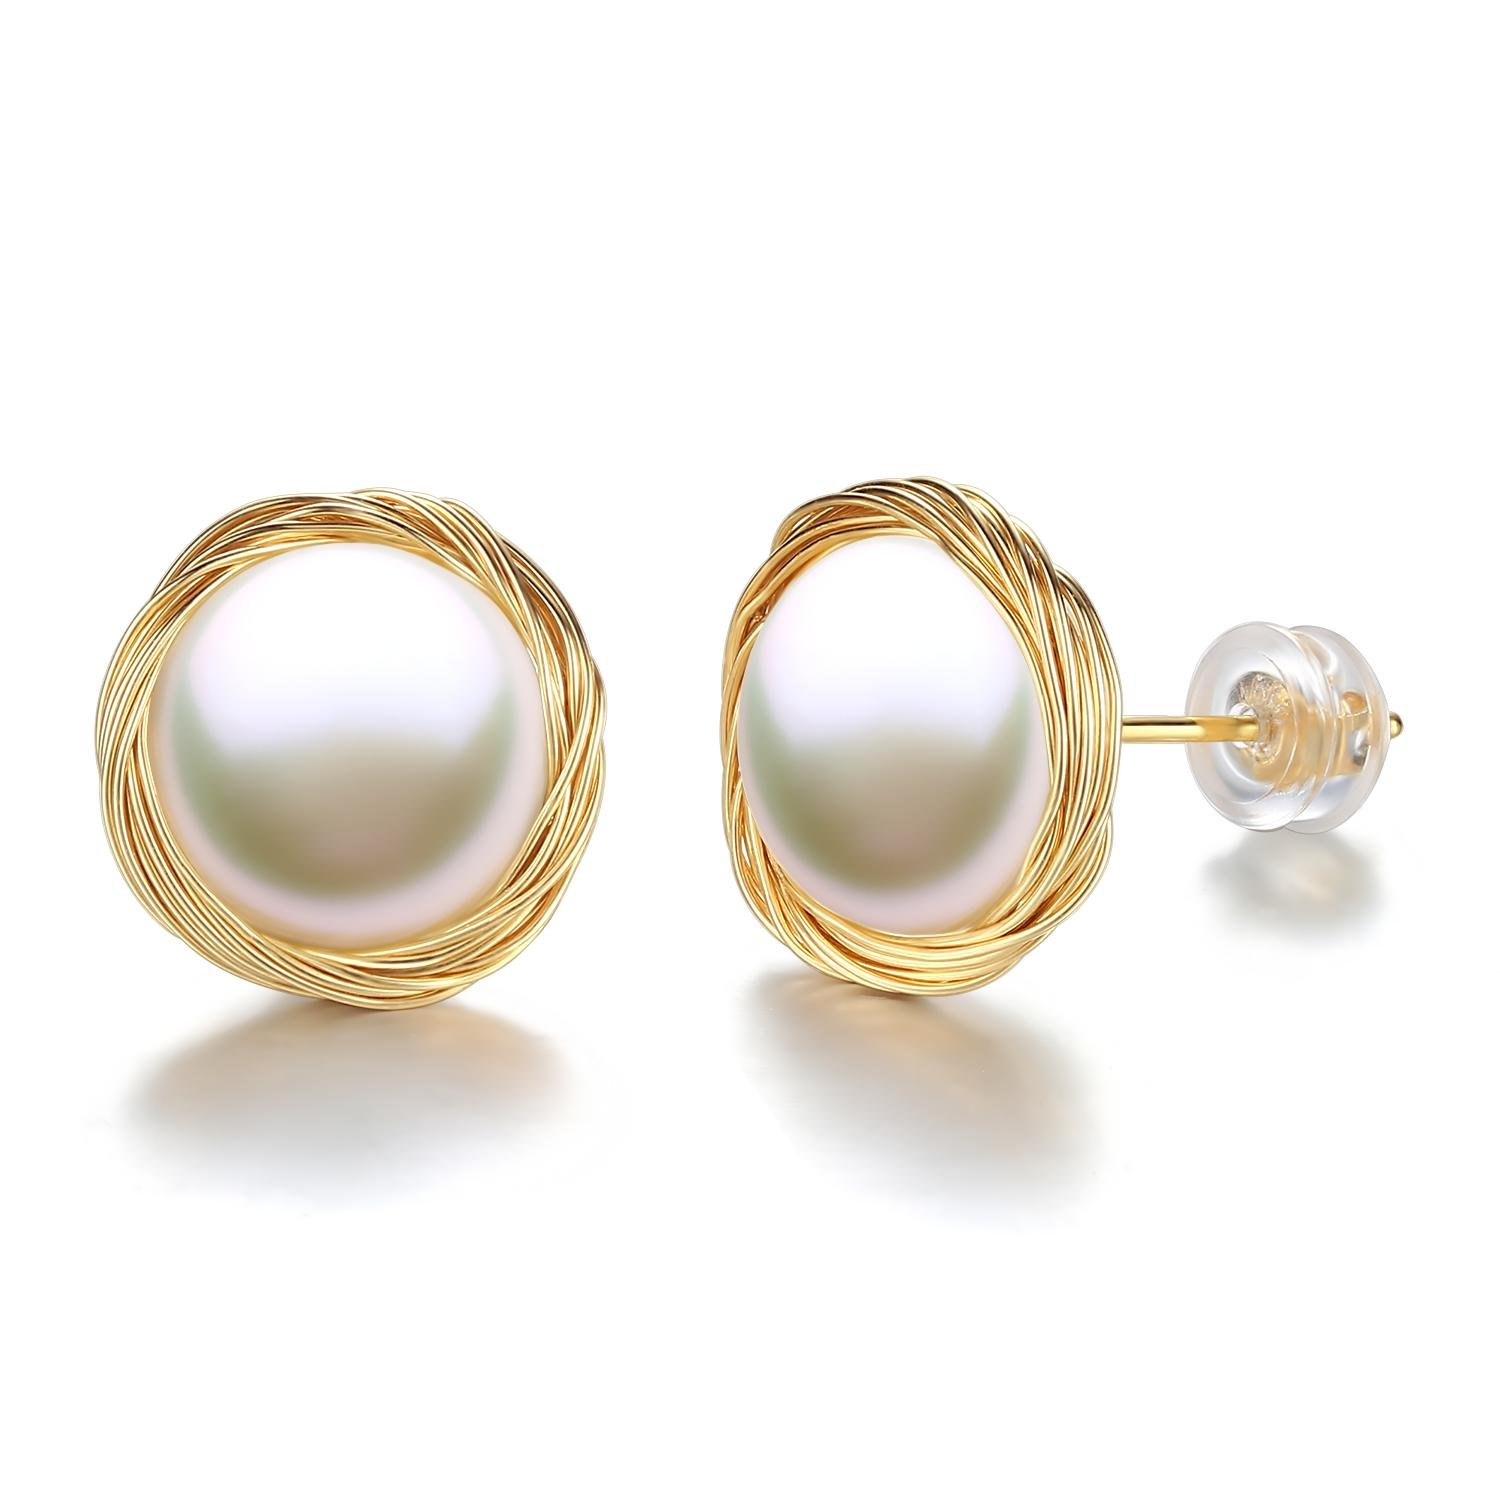 Handmade 14K Gold Women Wire Twist 10mm Large Freshwater Cultured Pearl Stud Earrings